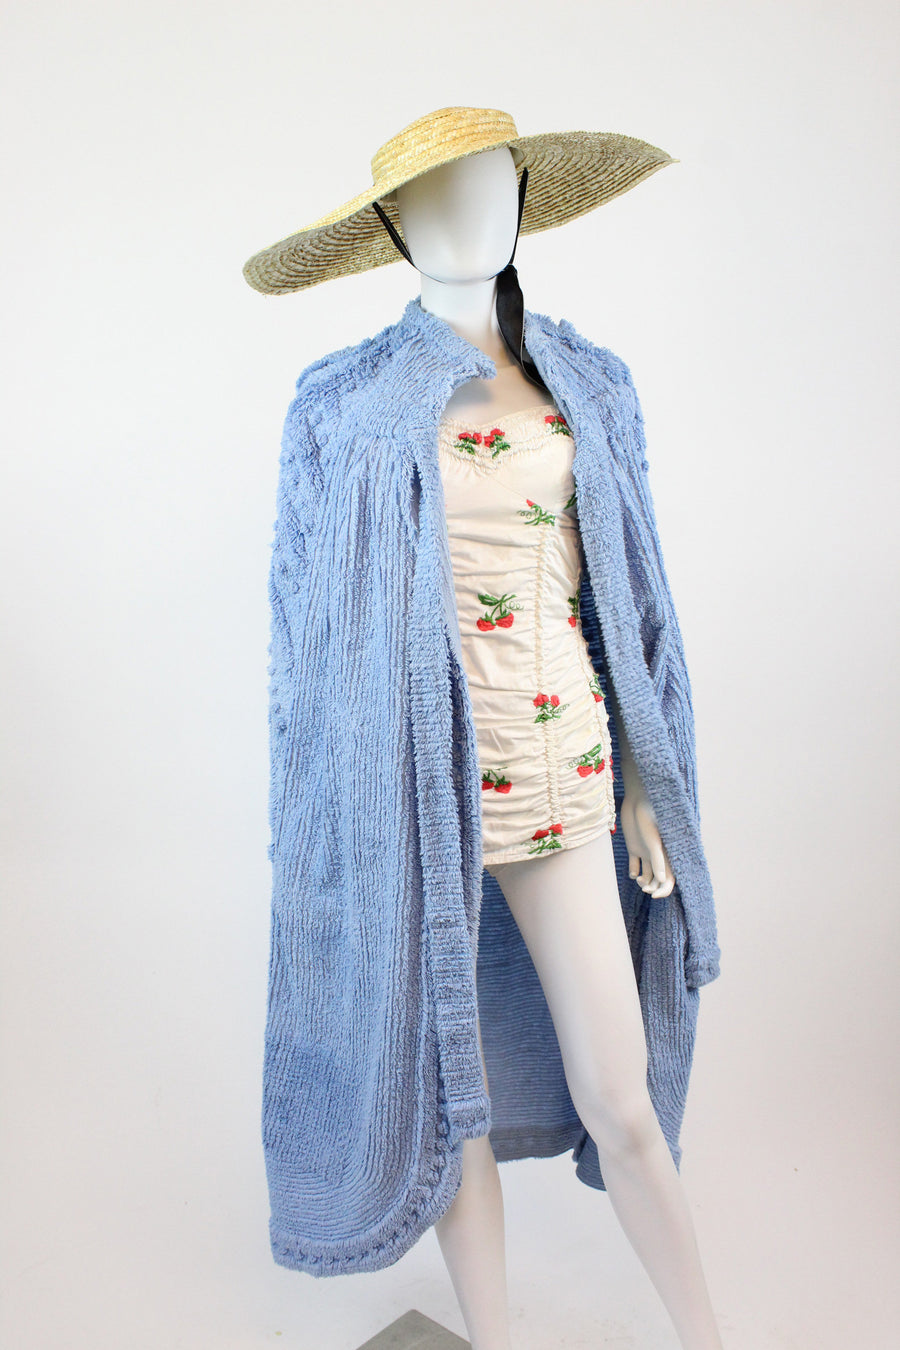 RARE 1930s 1940s chenille beach cape  |  vintage beach jacket | new in